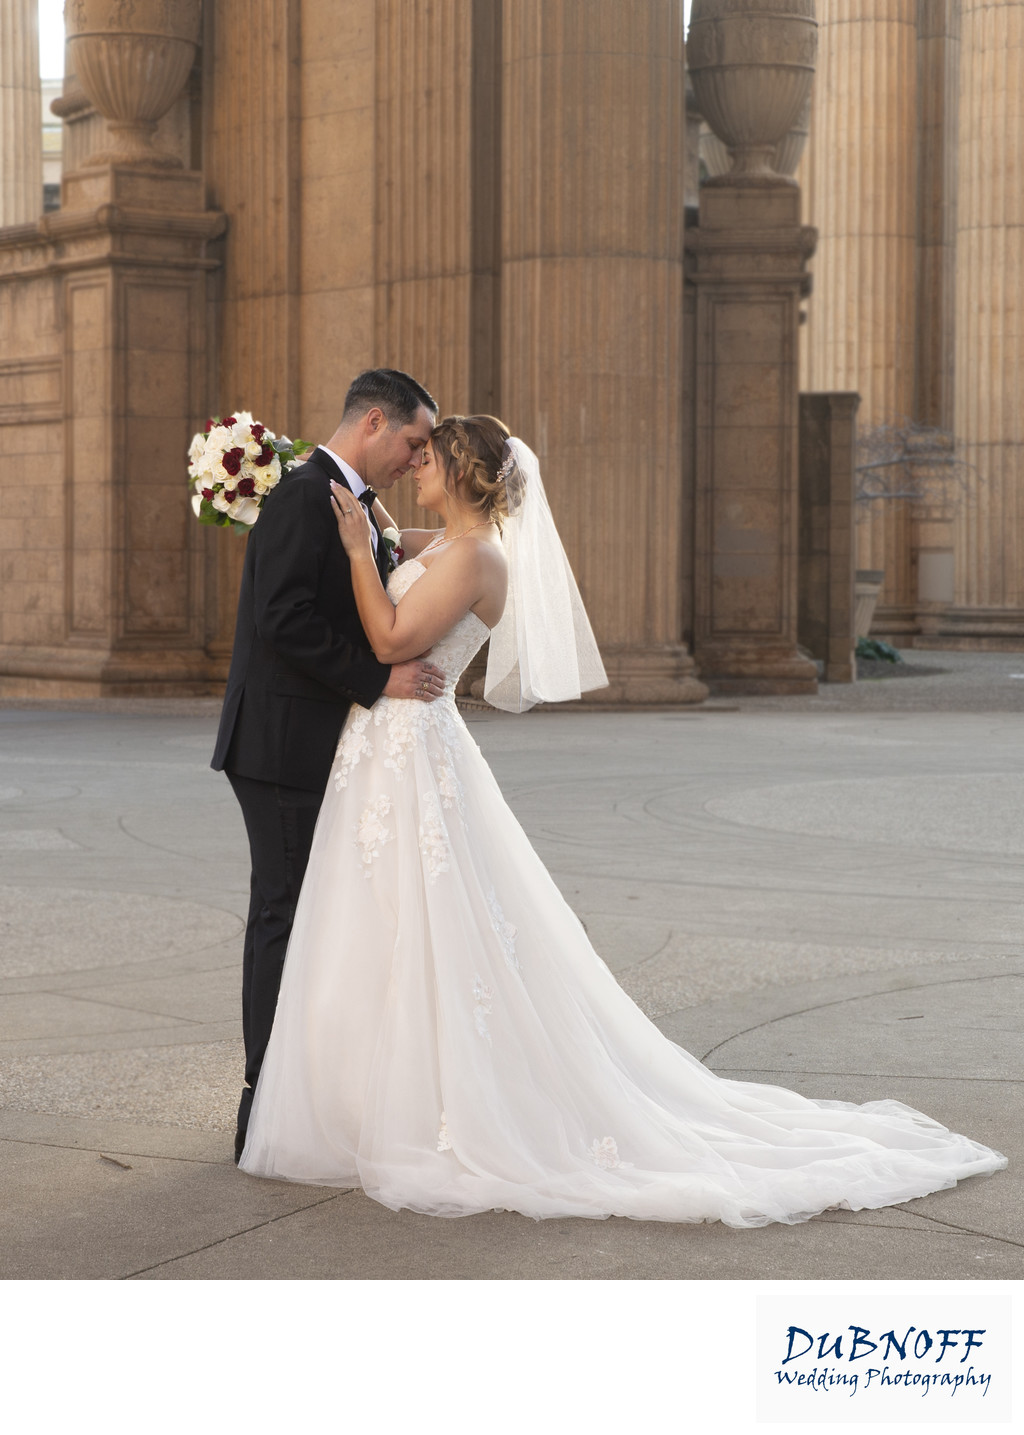 San Francisco Palace of Fine Arts - Wedding Photographer